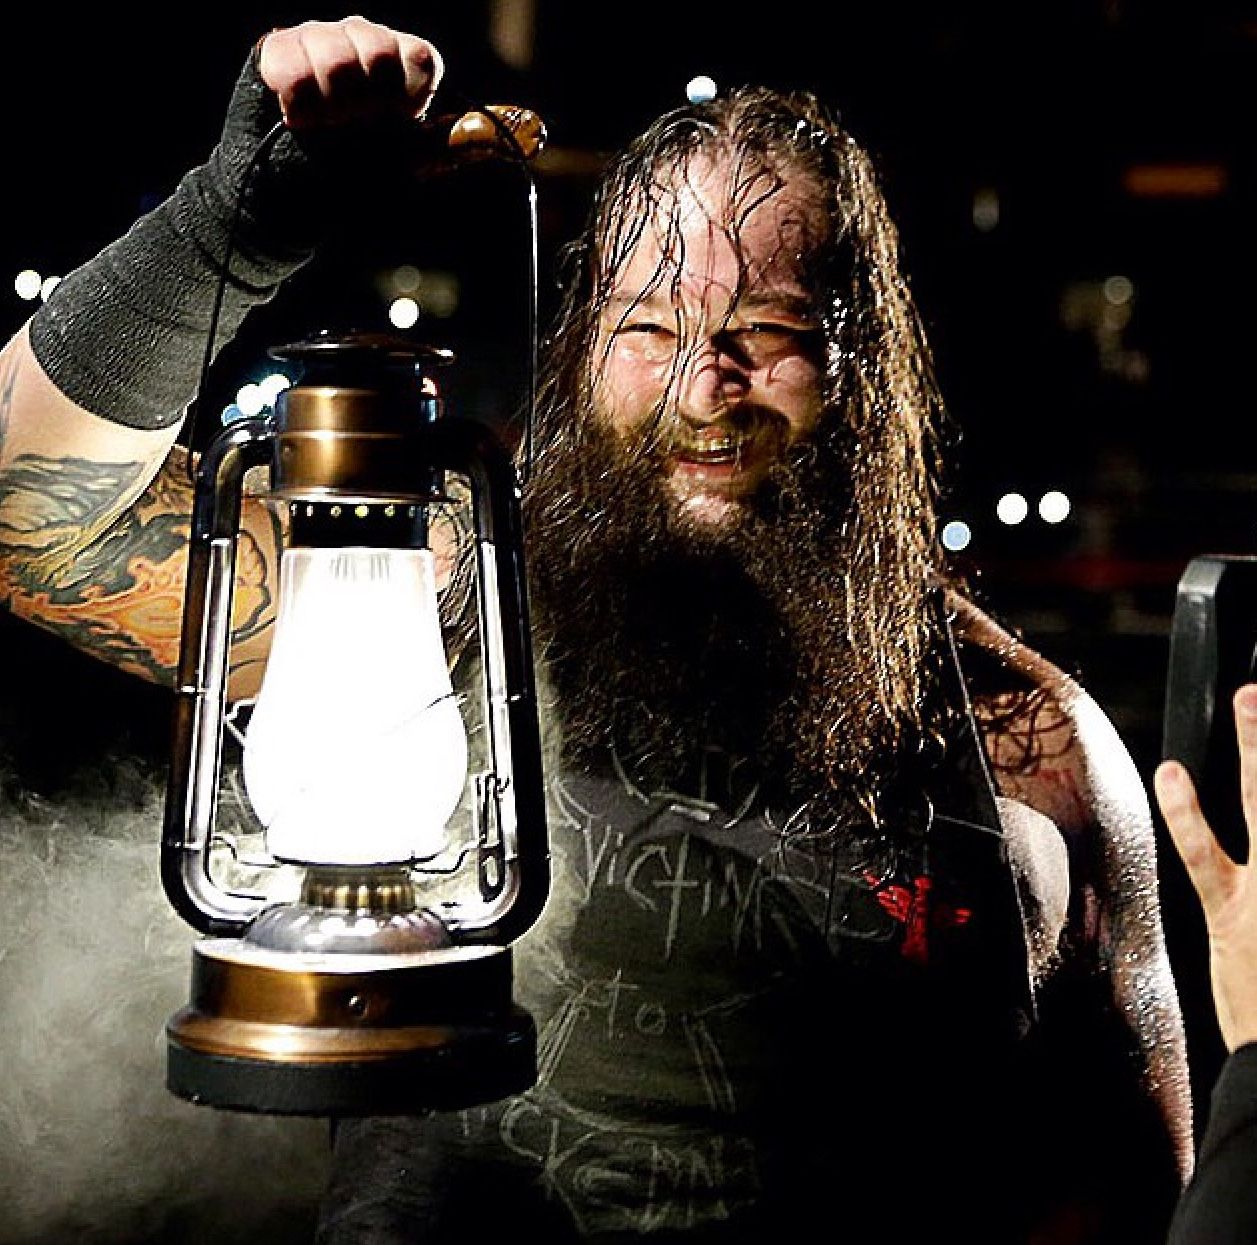 Bray Wyatt. Master of the promo and the best mystique/theatrics since undertaker and kane